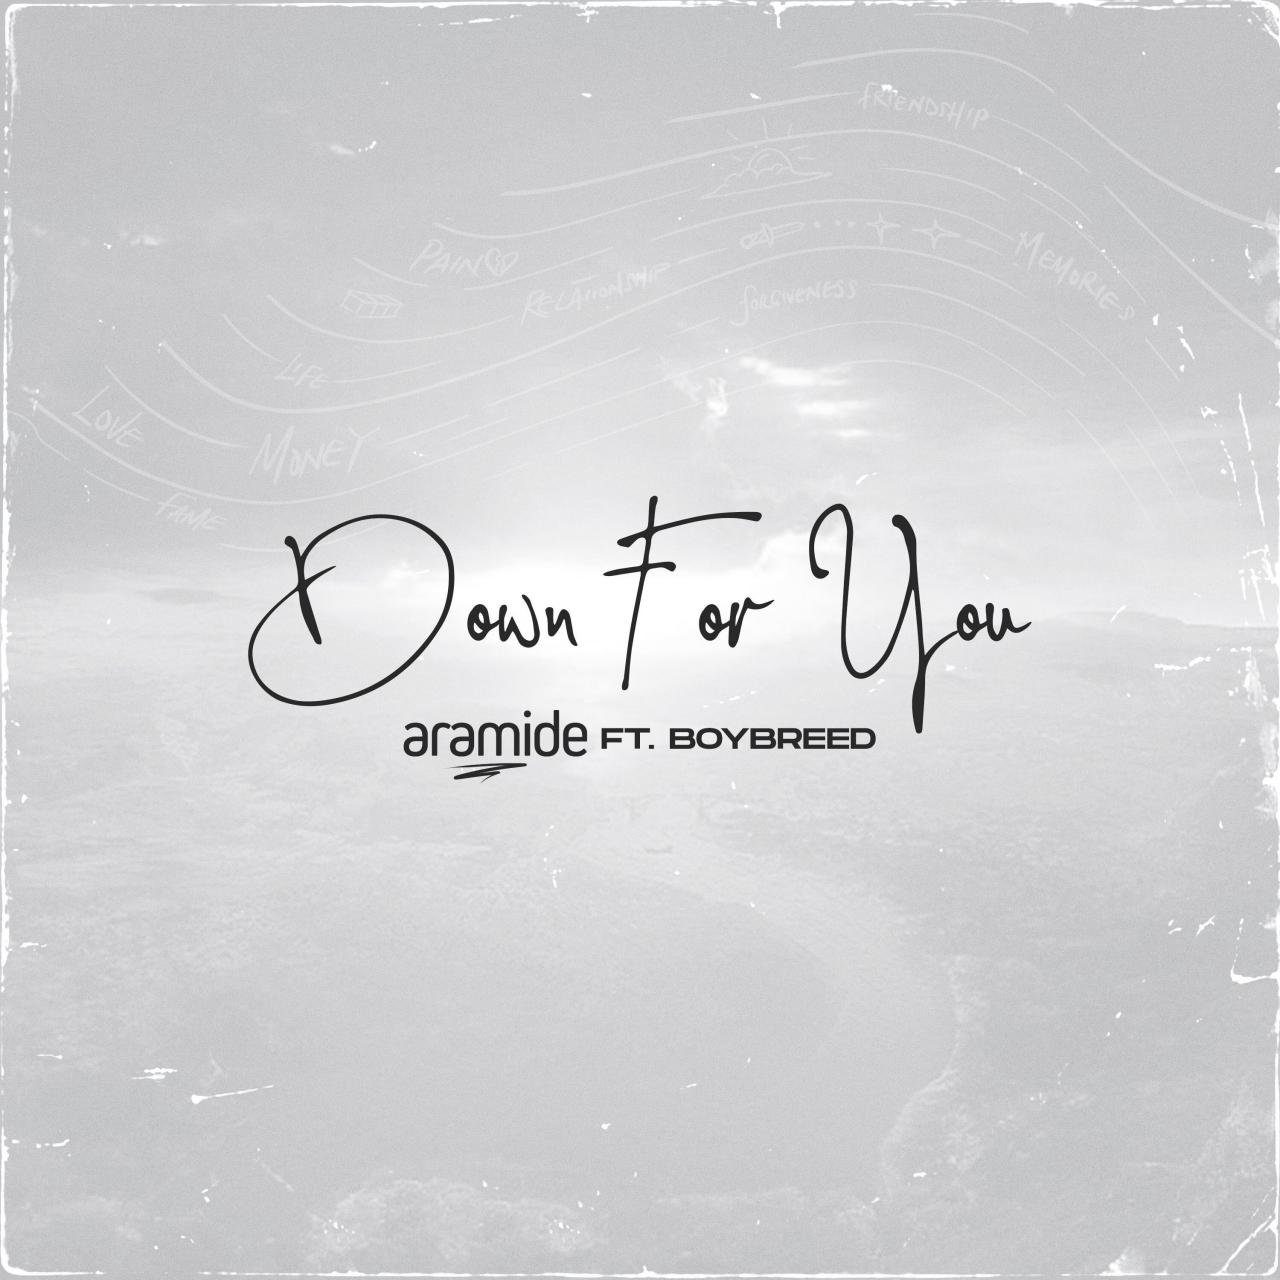 Aramide Ft. Boybreed - Down for You